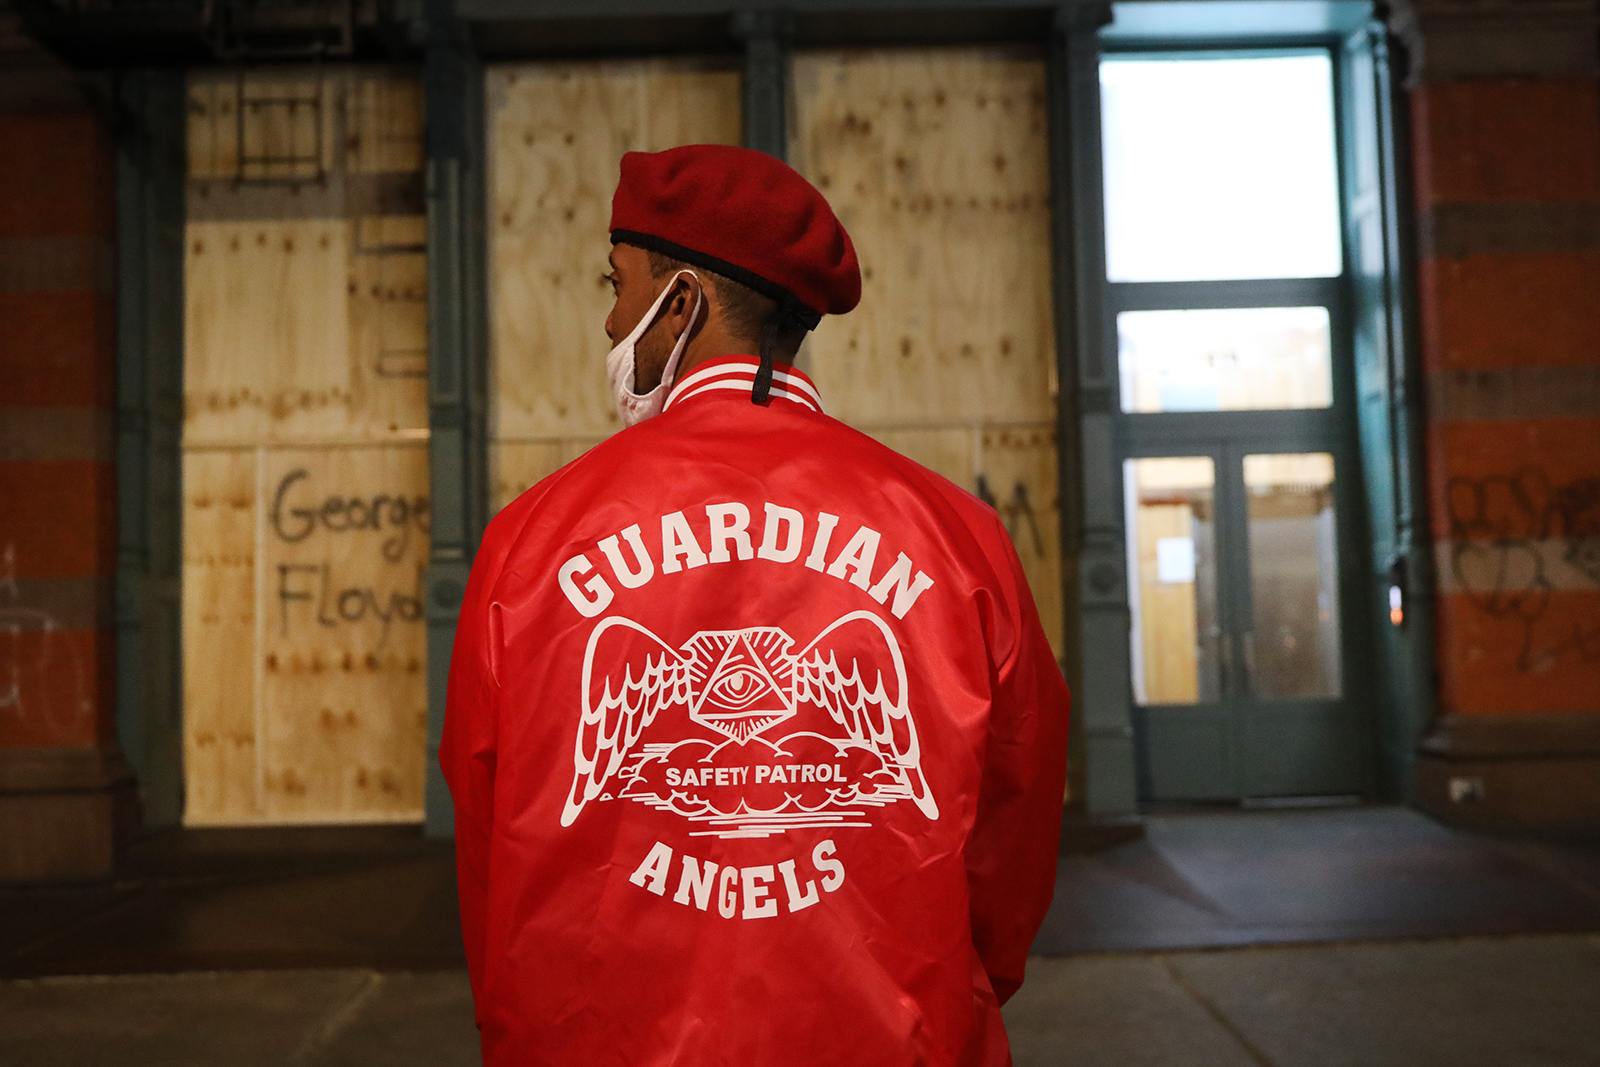 Members of the Guardian Angels, a volunteer organization of unarmed citizens which began in the late 1970's, stand guard near looted stores during a night of protests and vandalism over the death of George Floyd on June 1, 2020 in New York City.